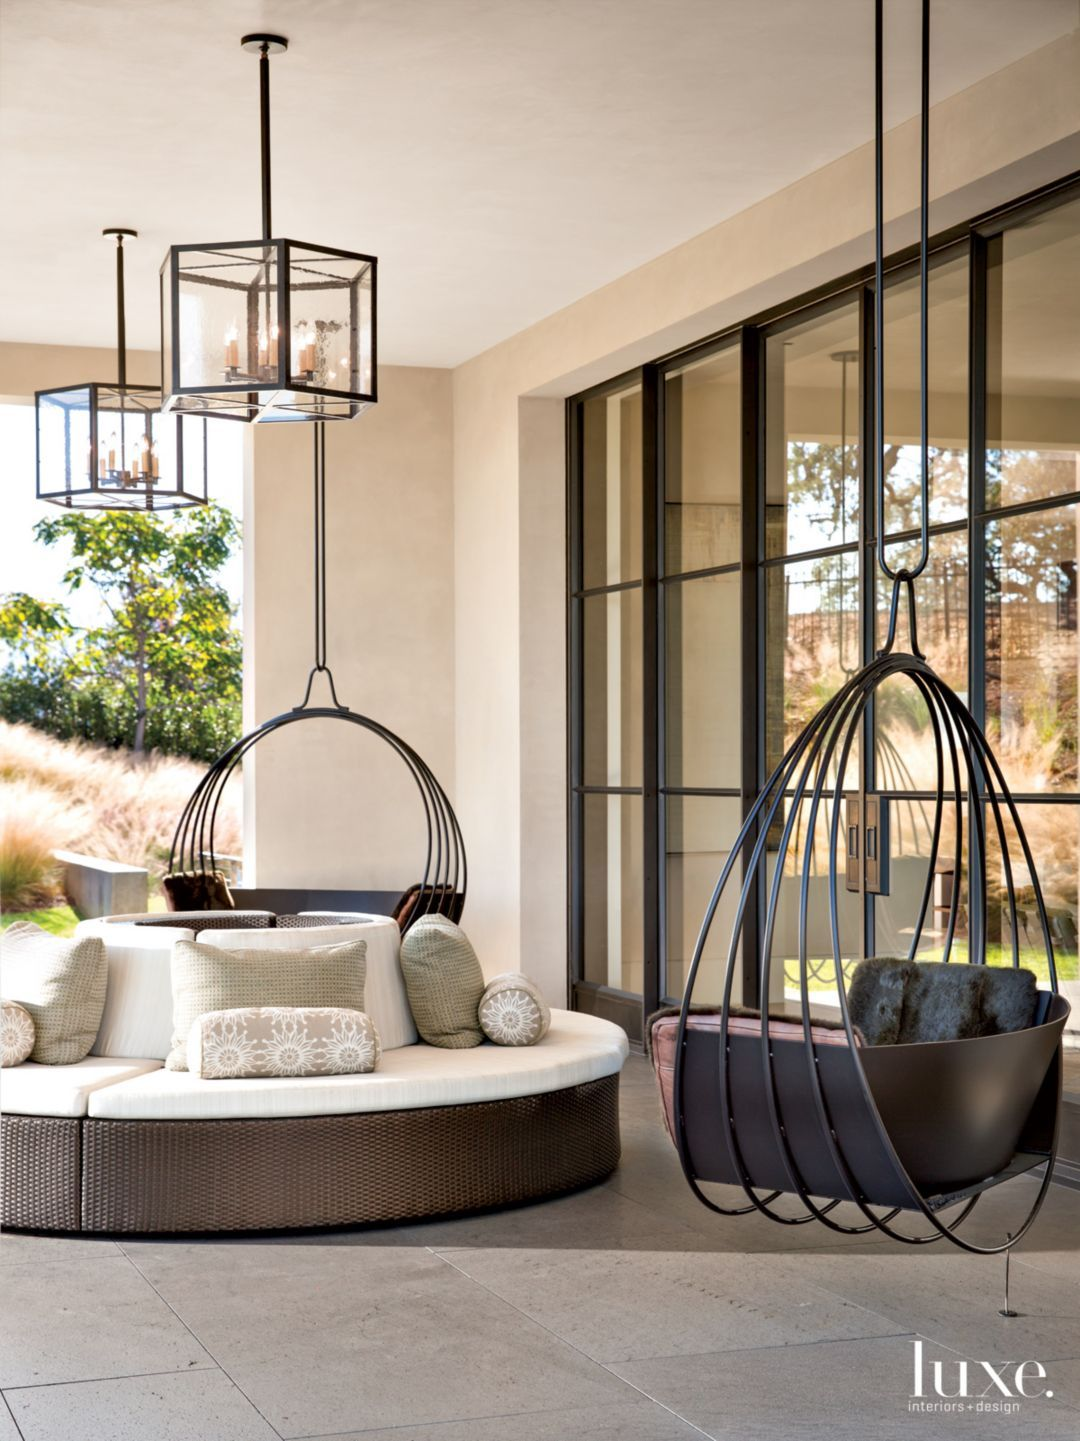 Modern outdoor seating from top like seats that twirl around to orb like porch swings